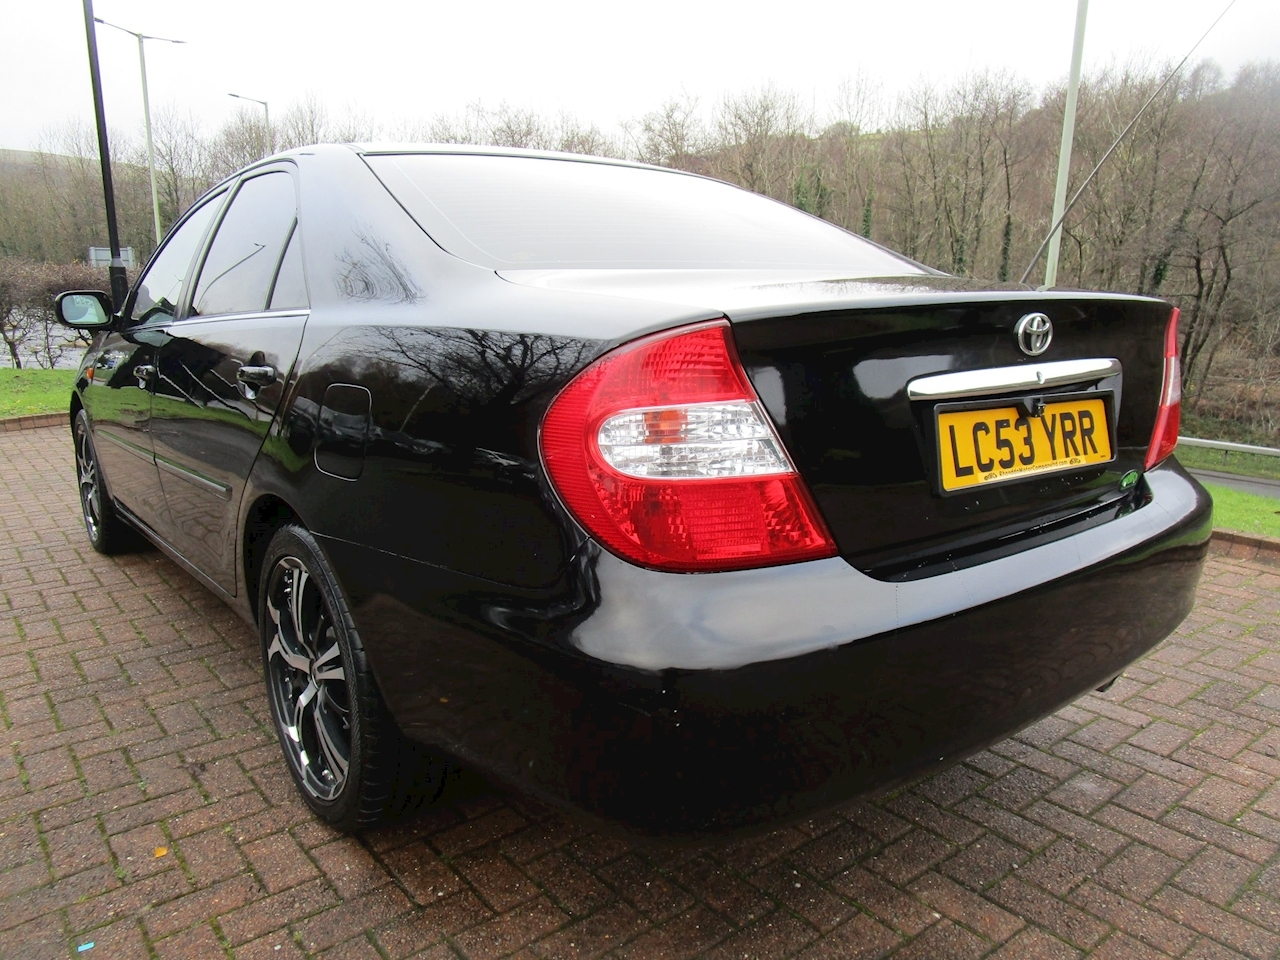 Camry Vvt-I Cdx 2.4 4dr Saloon Automatic Petrol